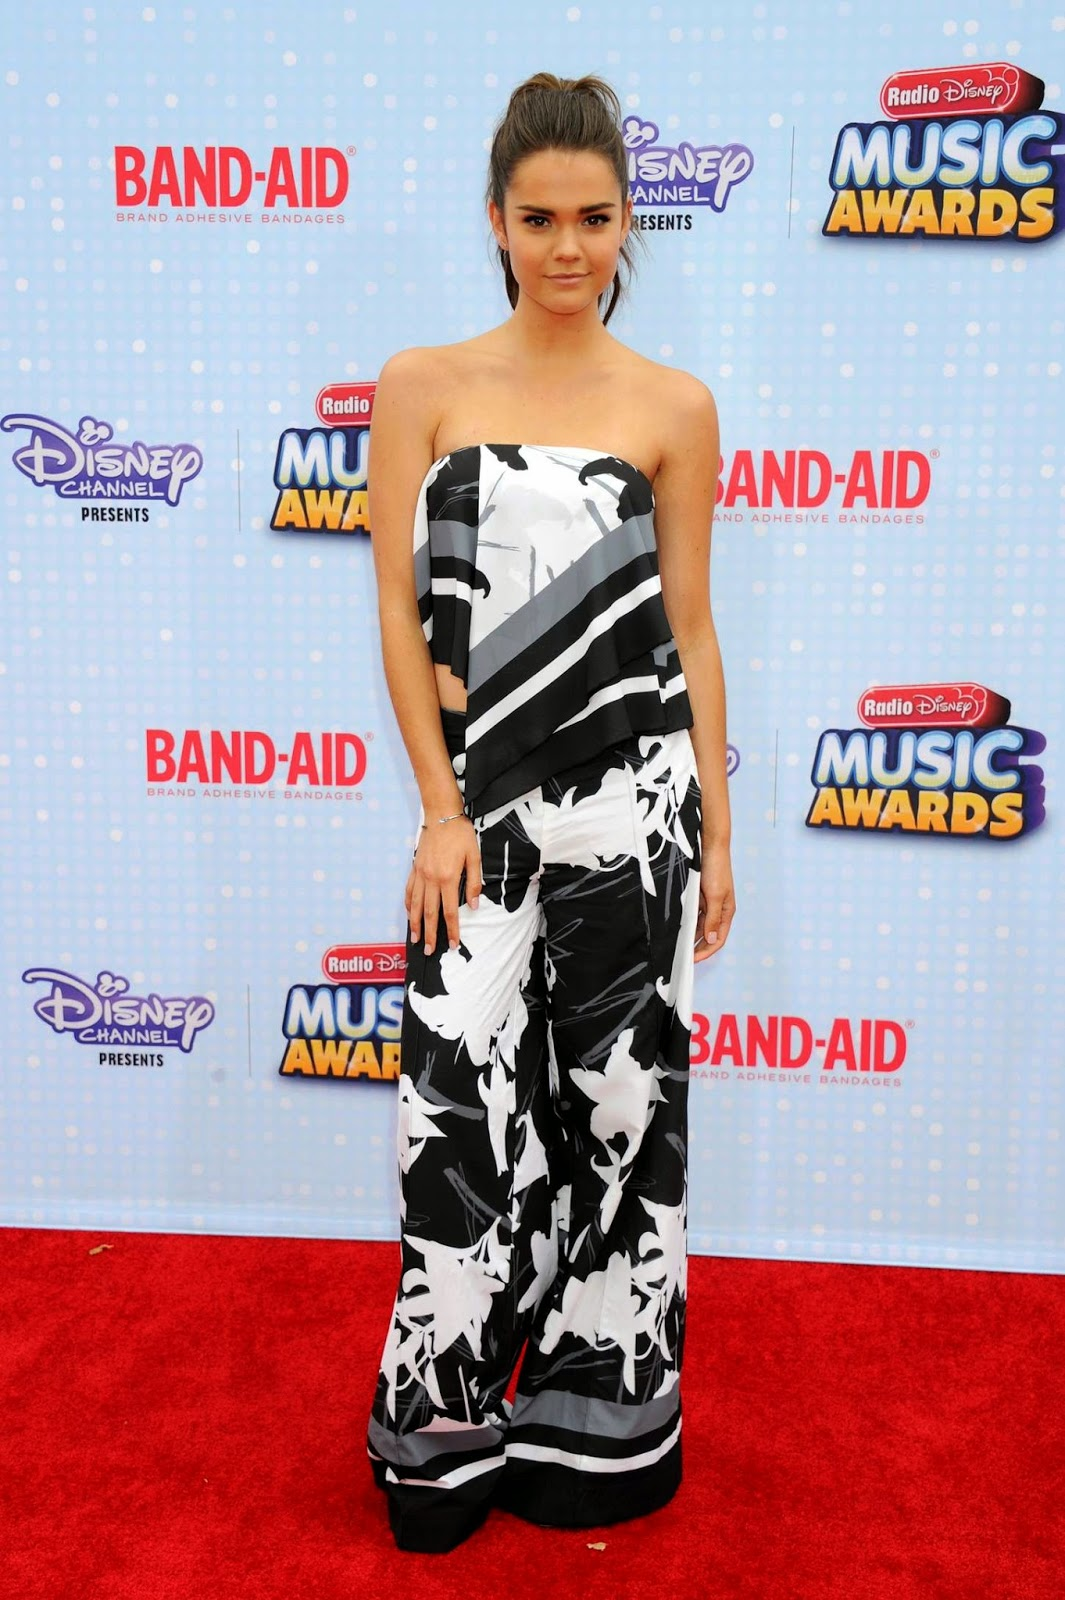 Maia Mitchell is chic in a strapless look at the 2015 Radio Disney Music Awards in LA